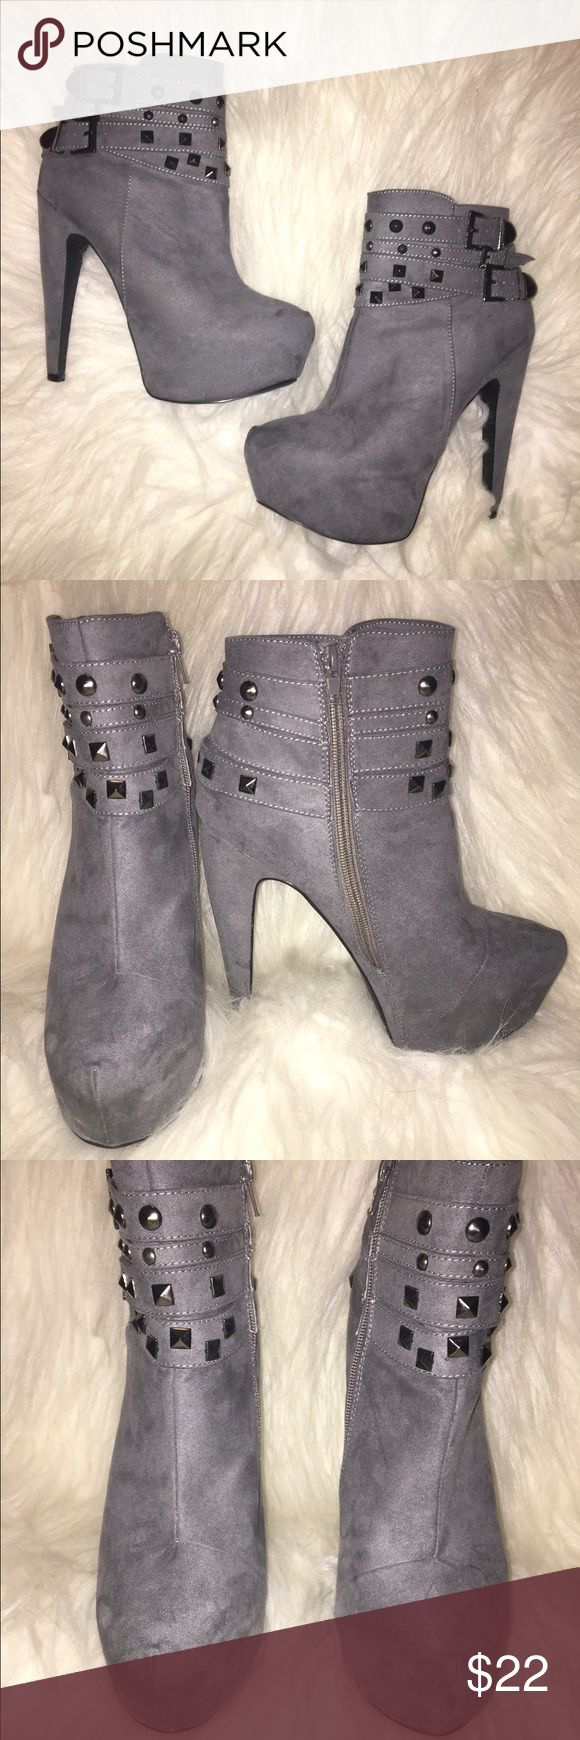 Shi by Journeys Grey High Heeled Savages Bootie Dark Grey High Heeled Bootie with rock stud embellishing's. Barely worn, slight mark on the right shoe but not noticeable by any means journeys Shoes Ankle Boots & Booties